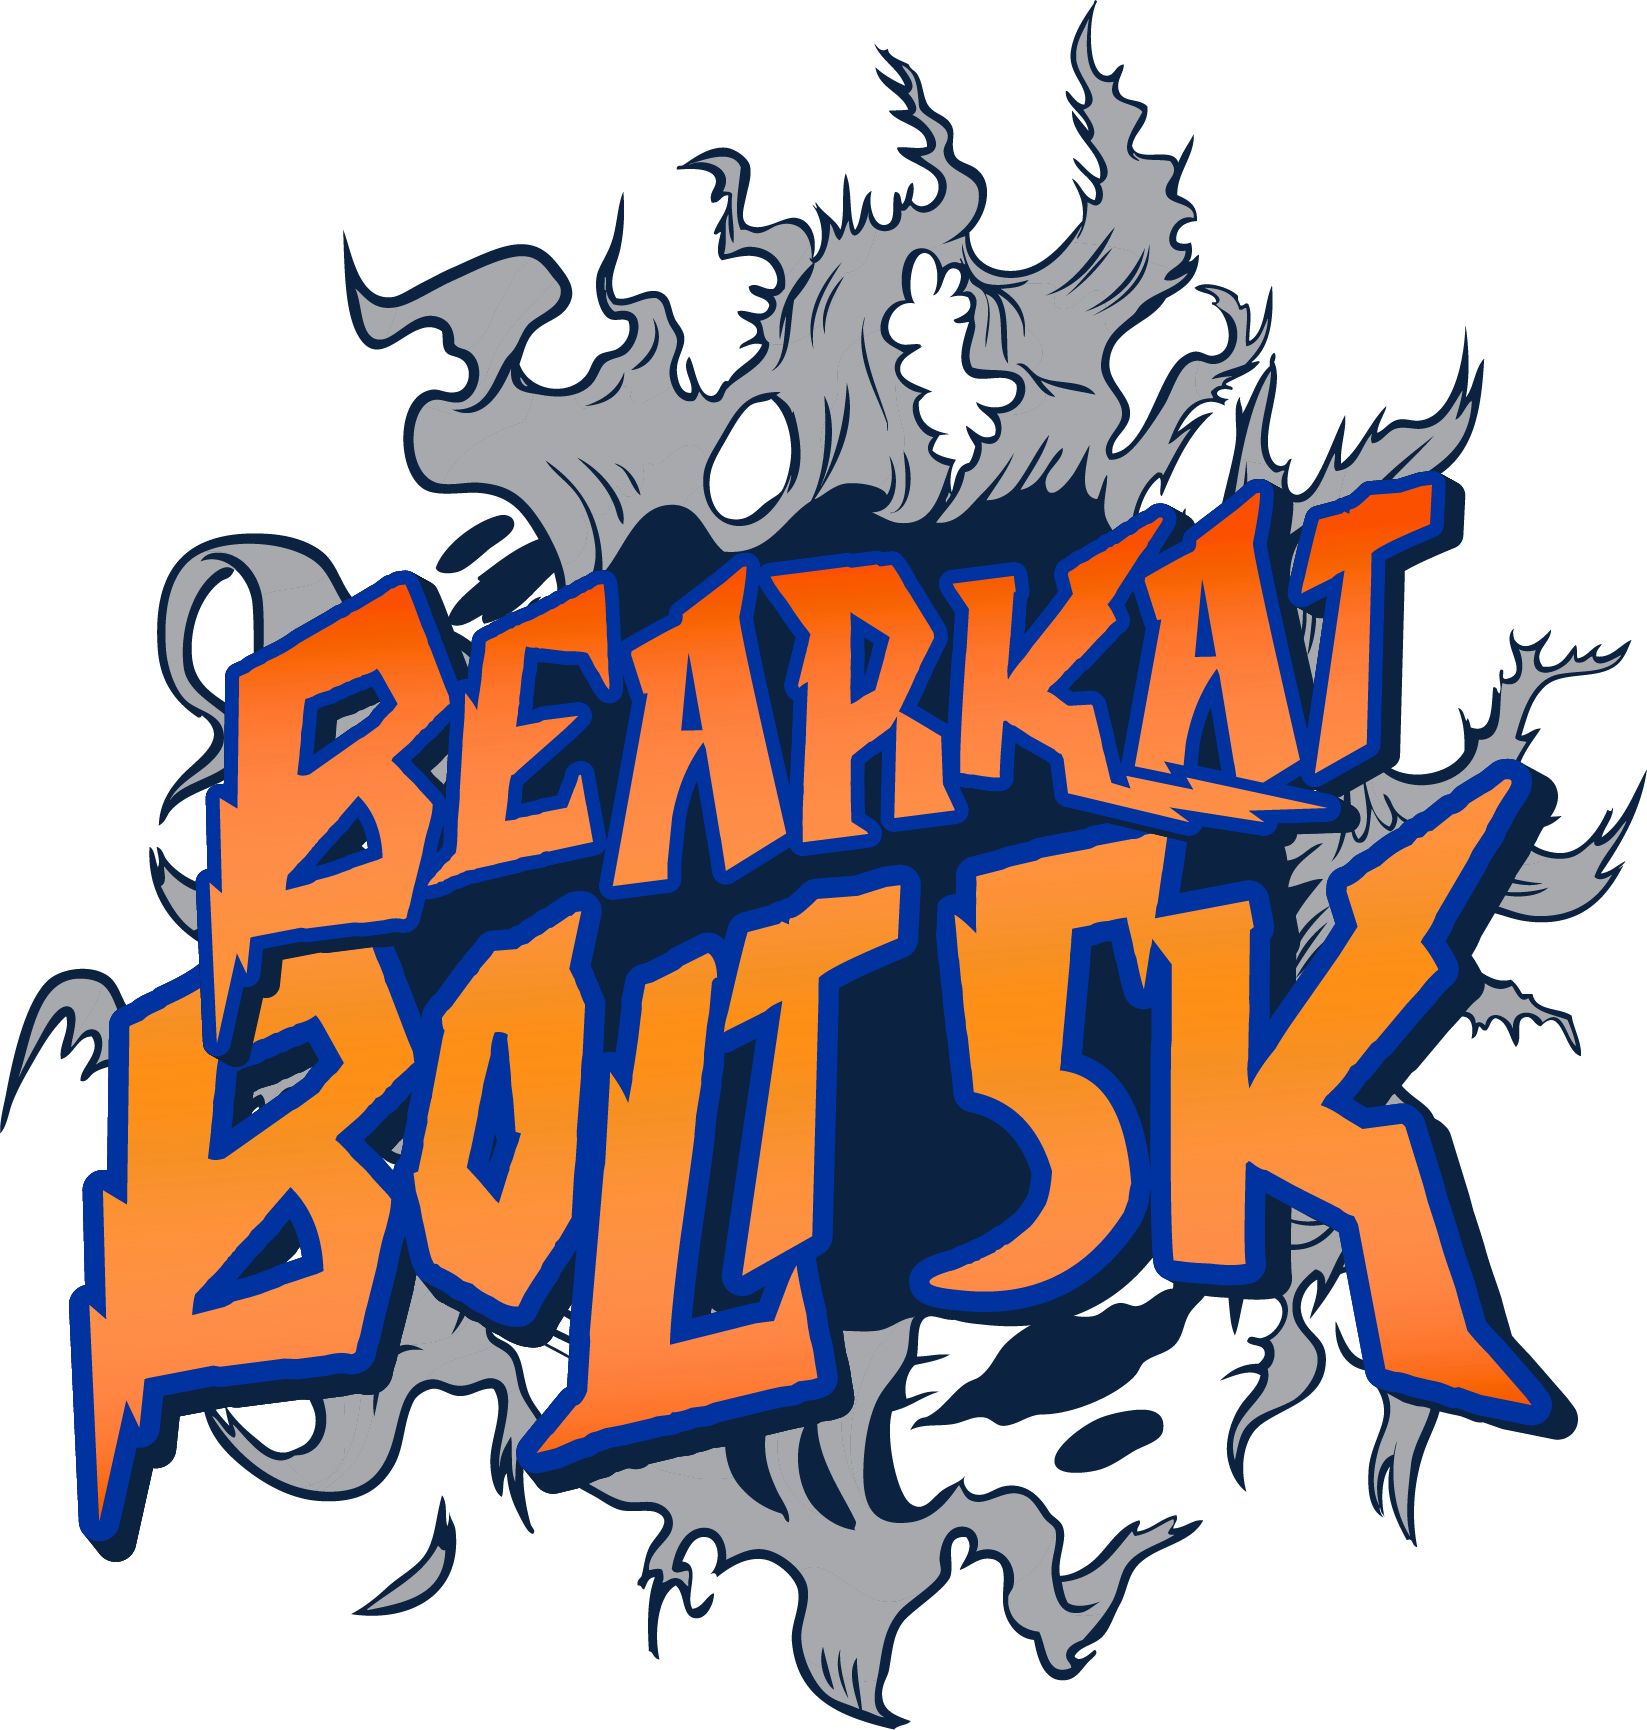 Bearkat Bolt Logo